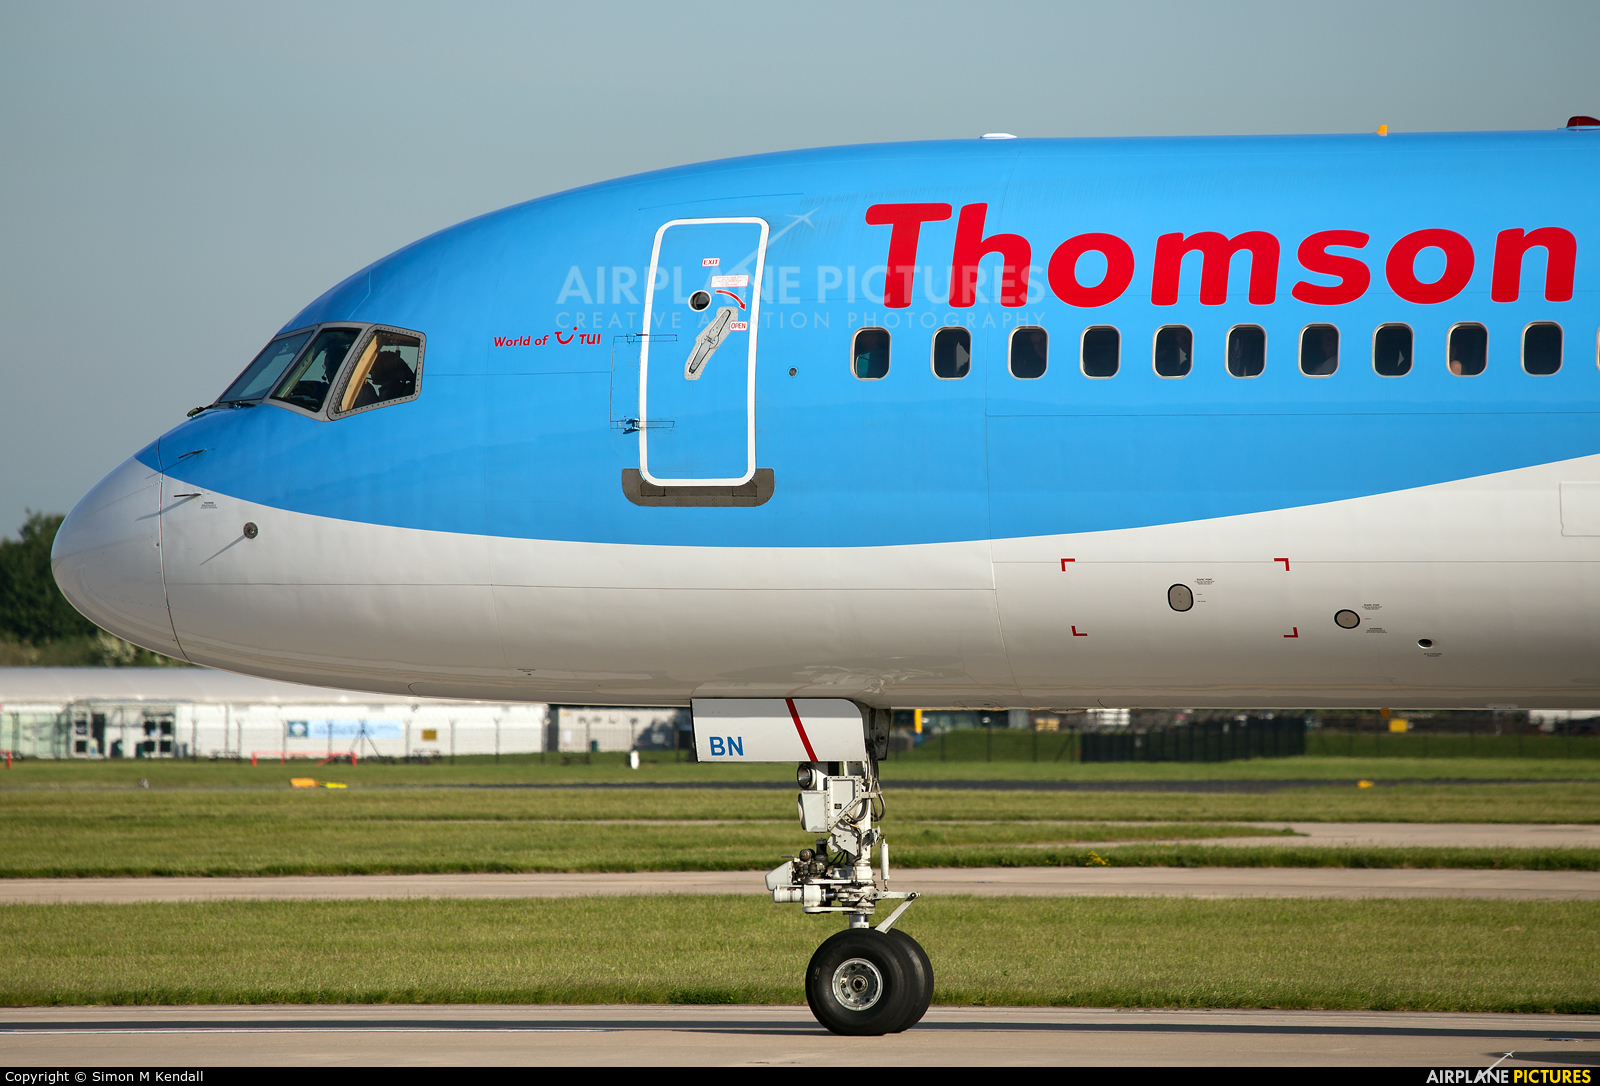 Thomson/Thomsonfly G-OOBN aircraft at Manchester